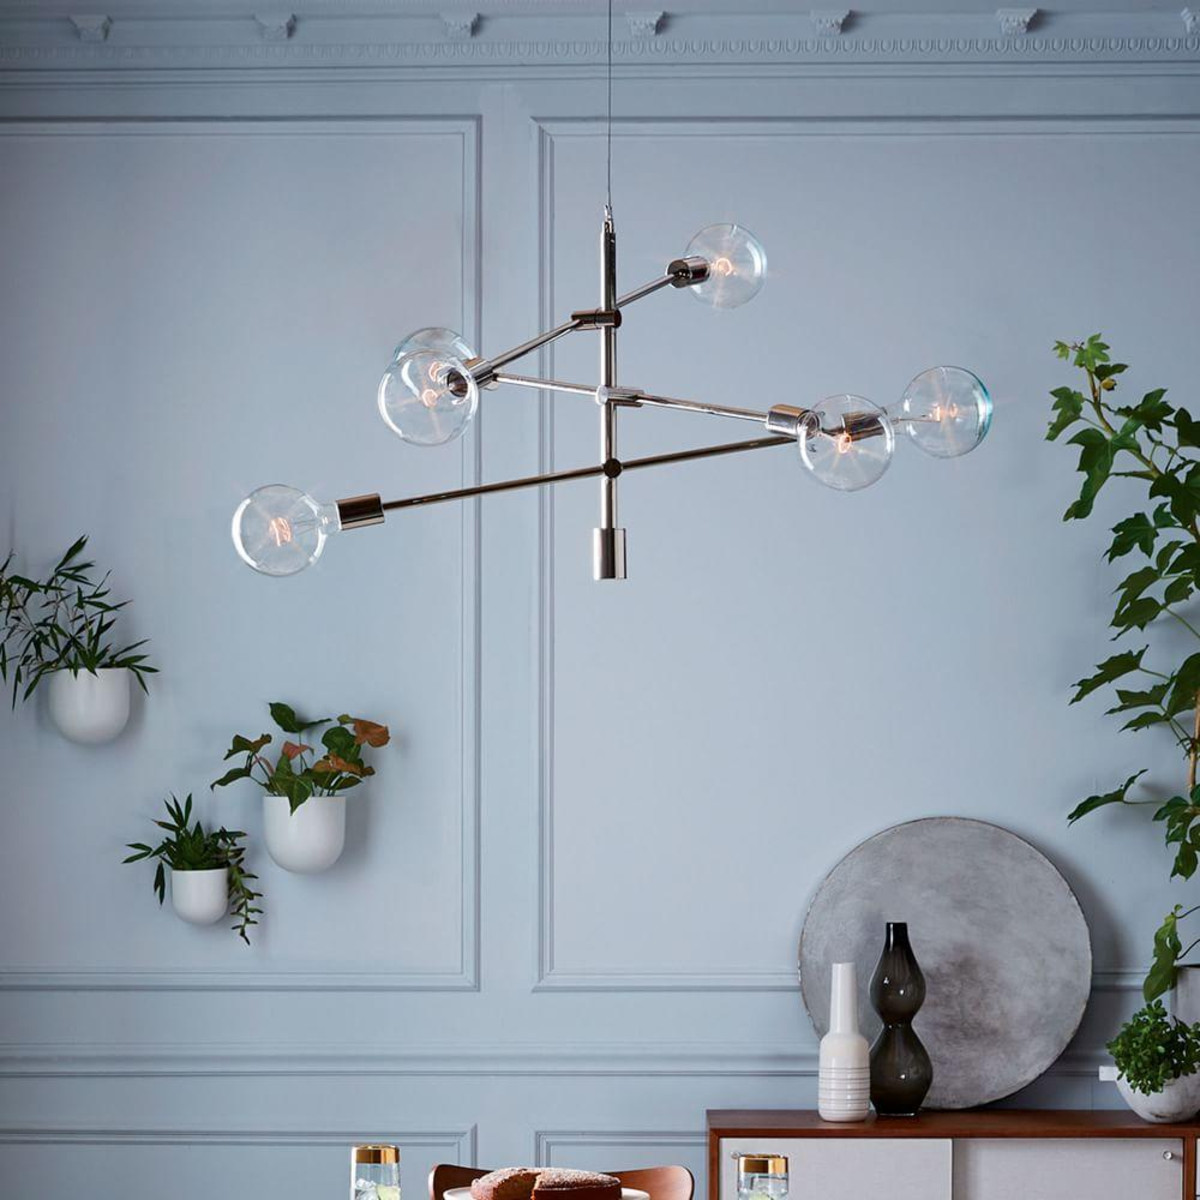 Capiz Chandelier West Elm | West Elm Chandelier | William Sonoma Home Lighting